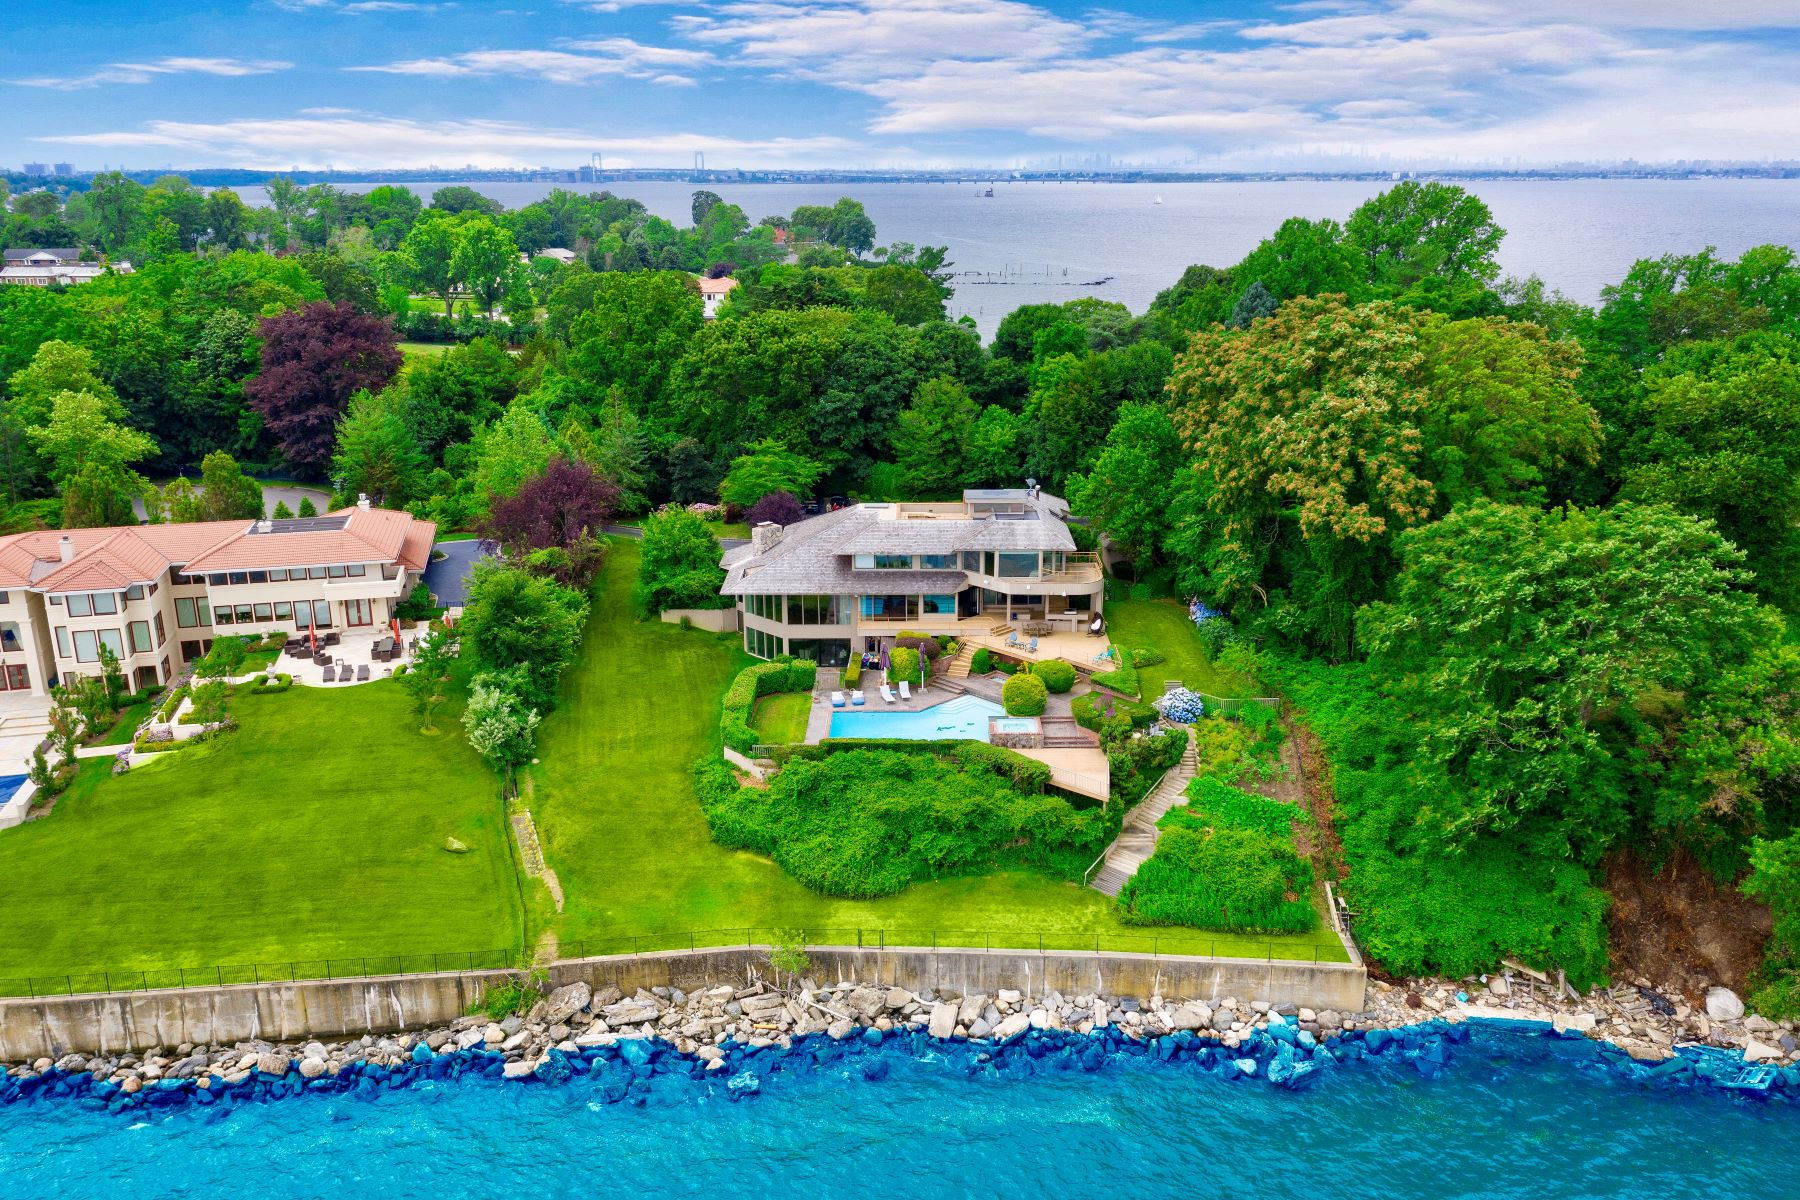 Property for Sale at Gatsby Lane, Great Neck, NY 11024 15 Gatsby Lane Kings Point, New York 11024 United States